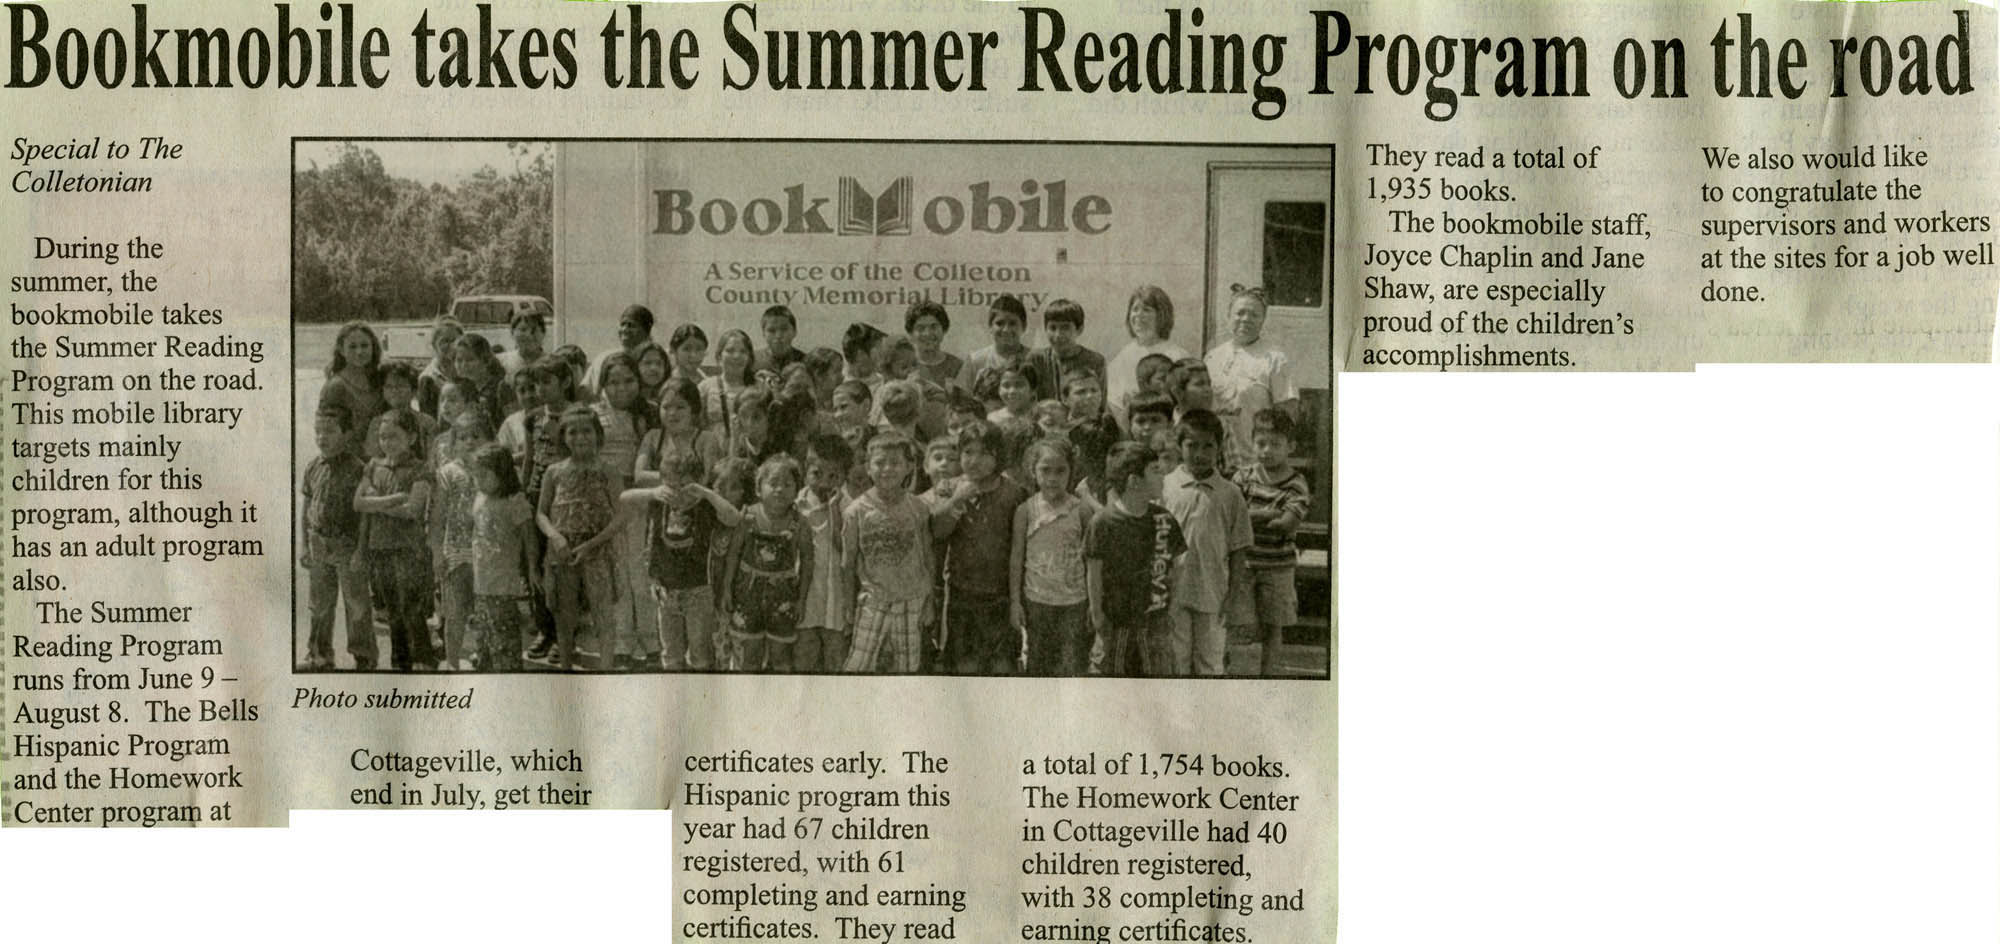 Bookmobile Takes the Summer Reading Program on the Road